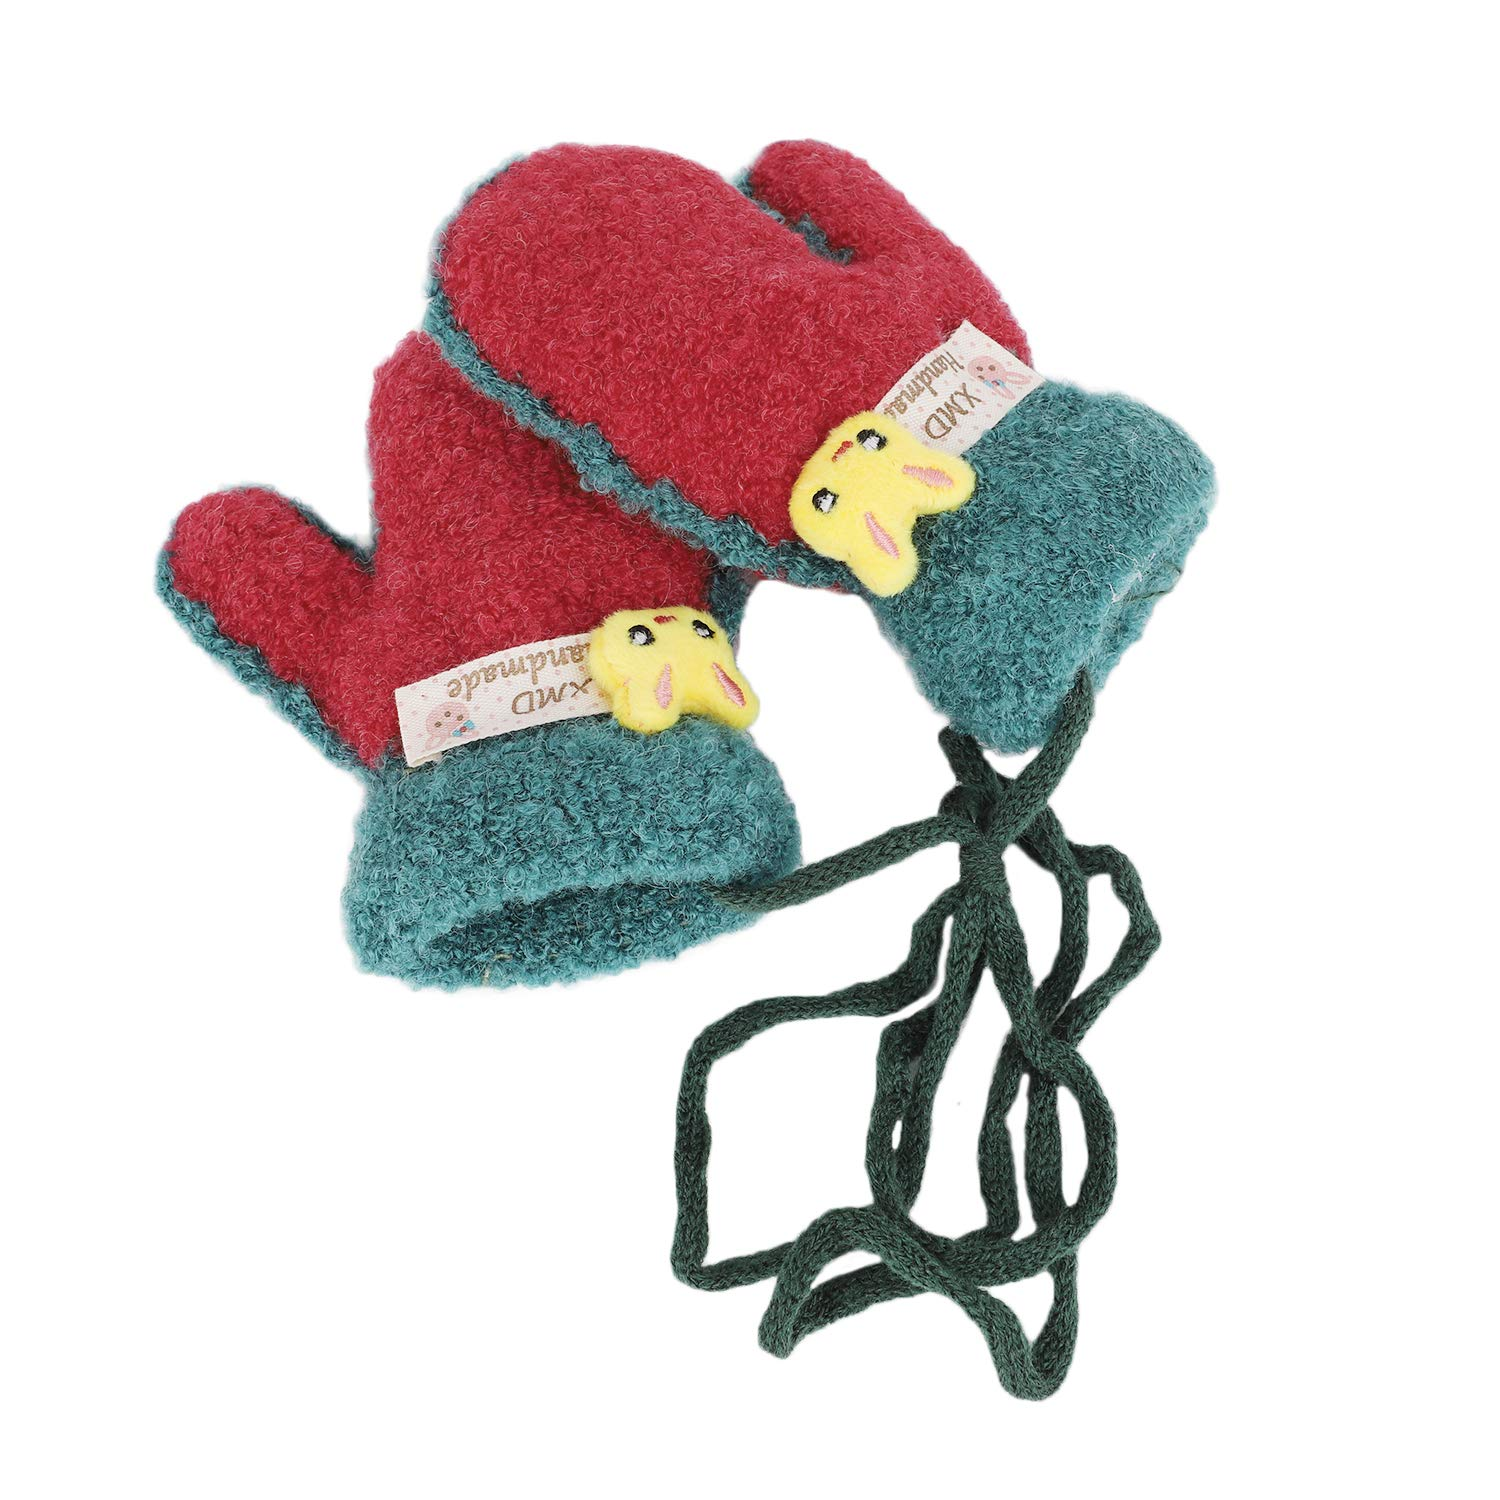 Babies Toddler Winter Soft Warm Short Knitted Gloves Thick Plush Lining Mittens